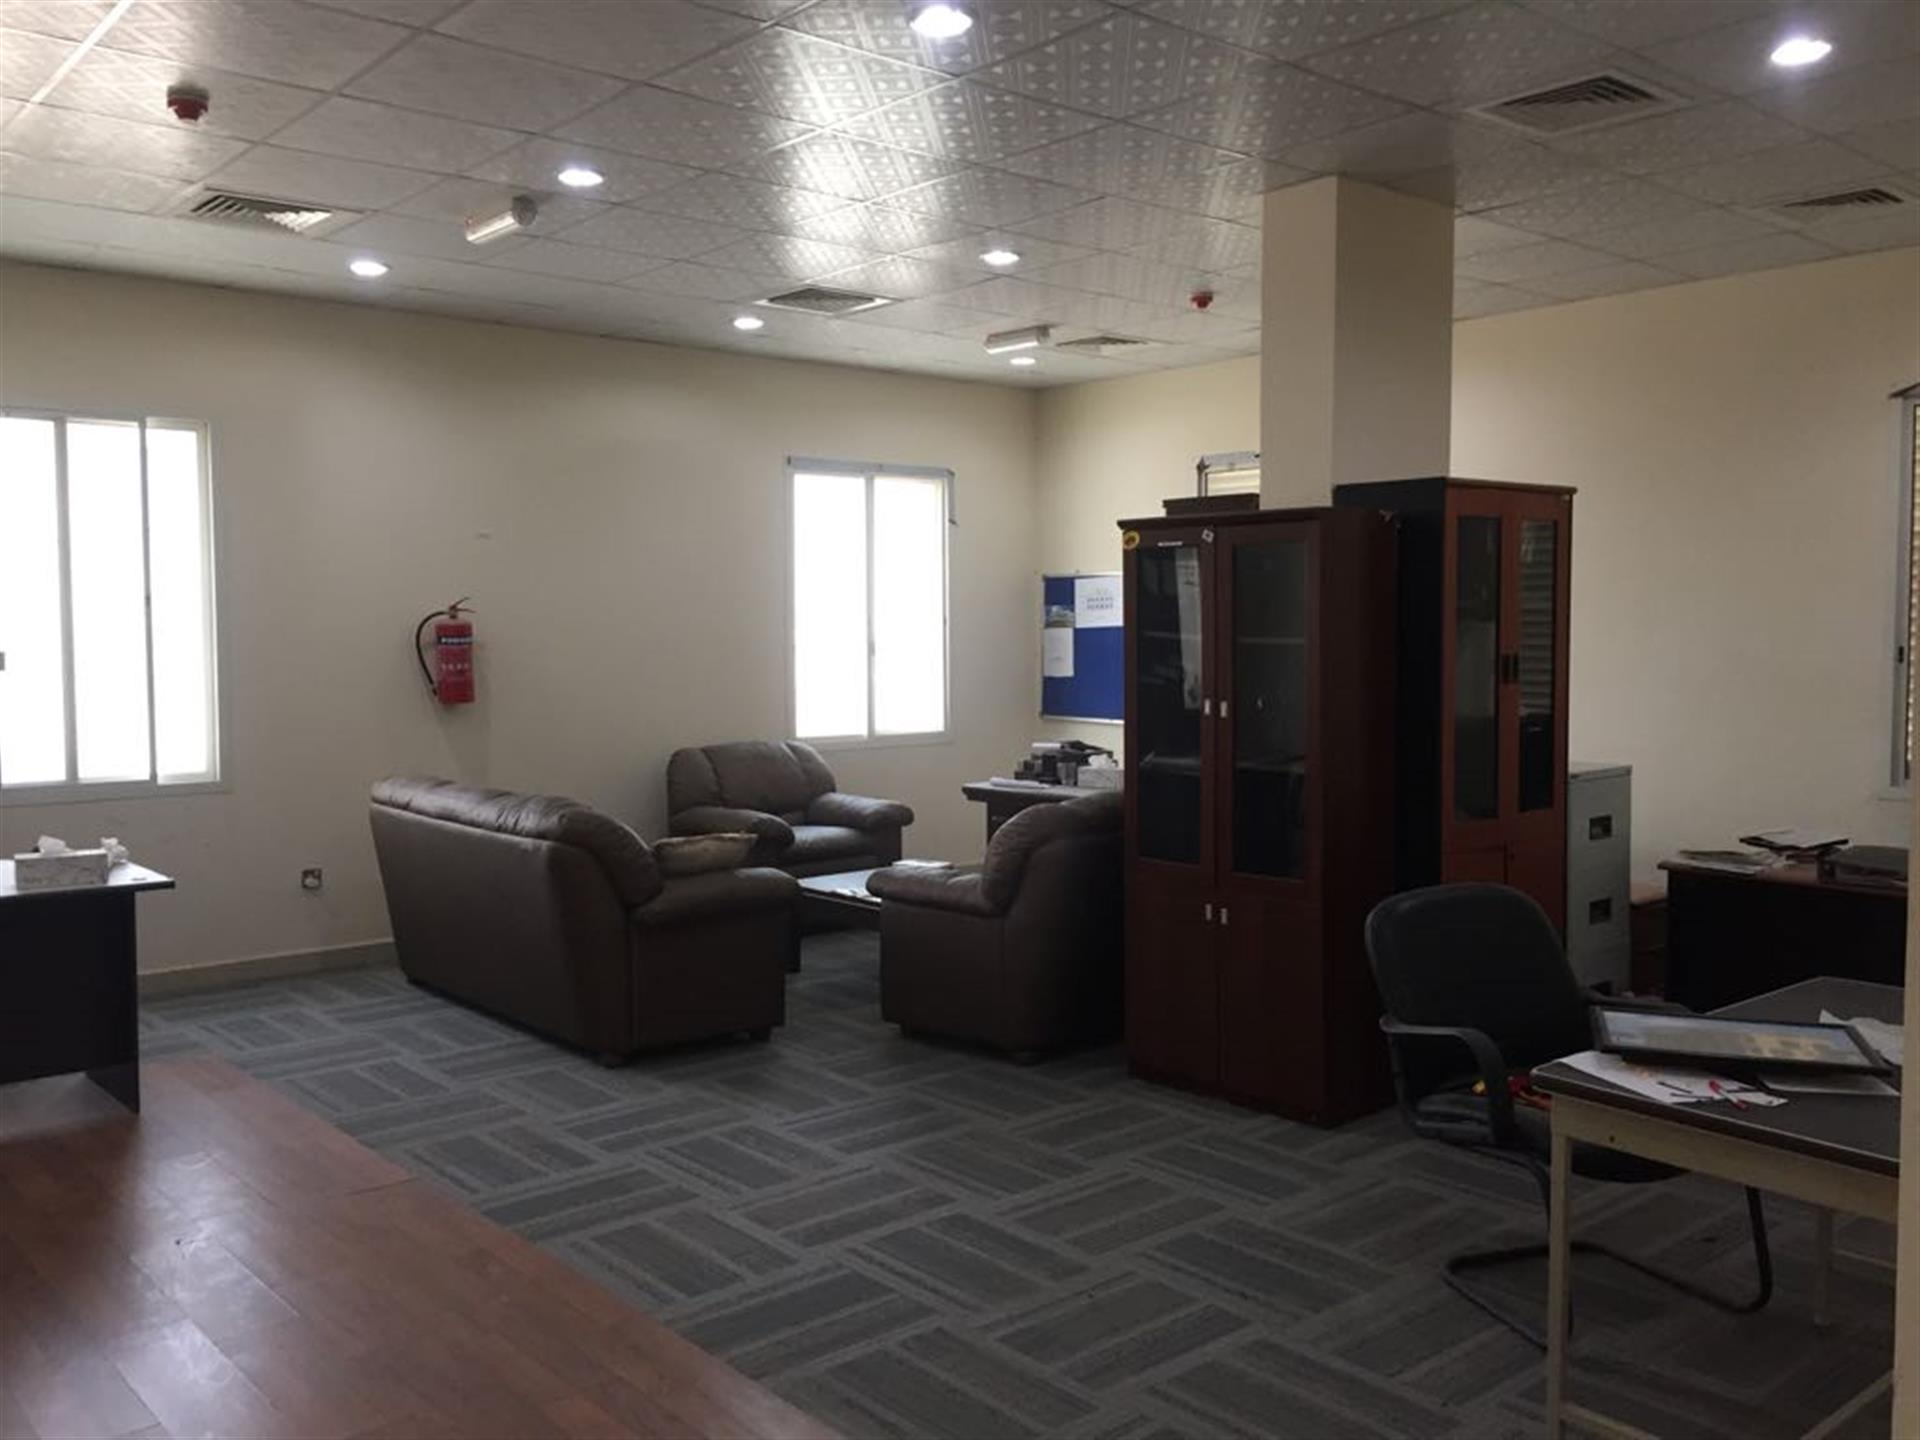 85 Sqm Open Office Space for rent at Madinat khalifa | Qatar Living